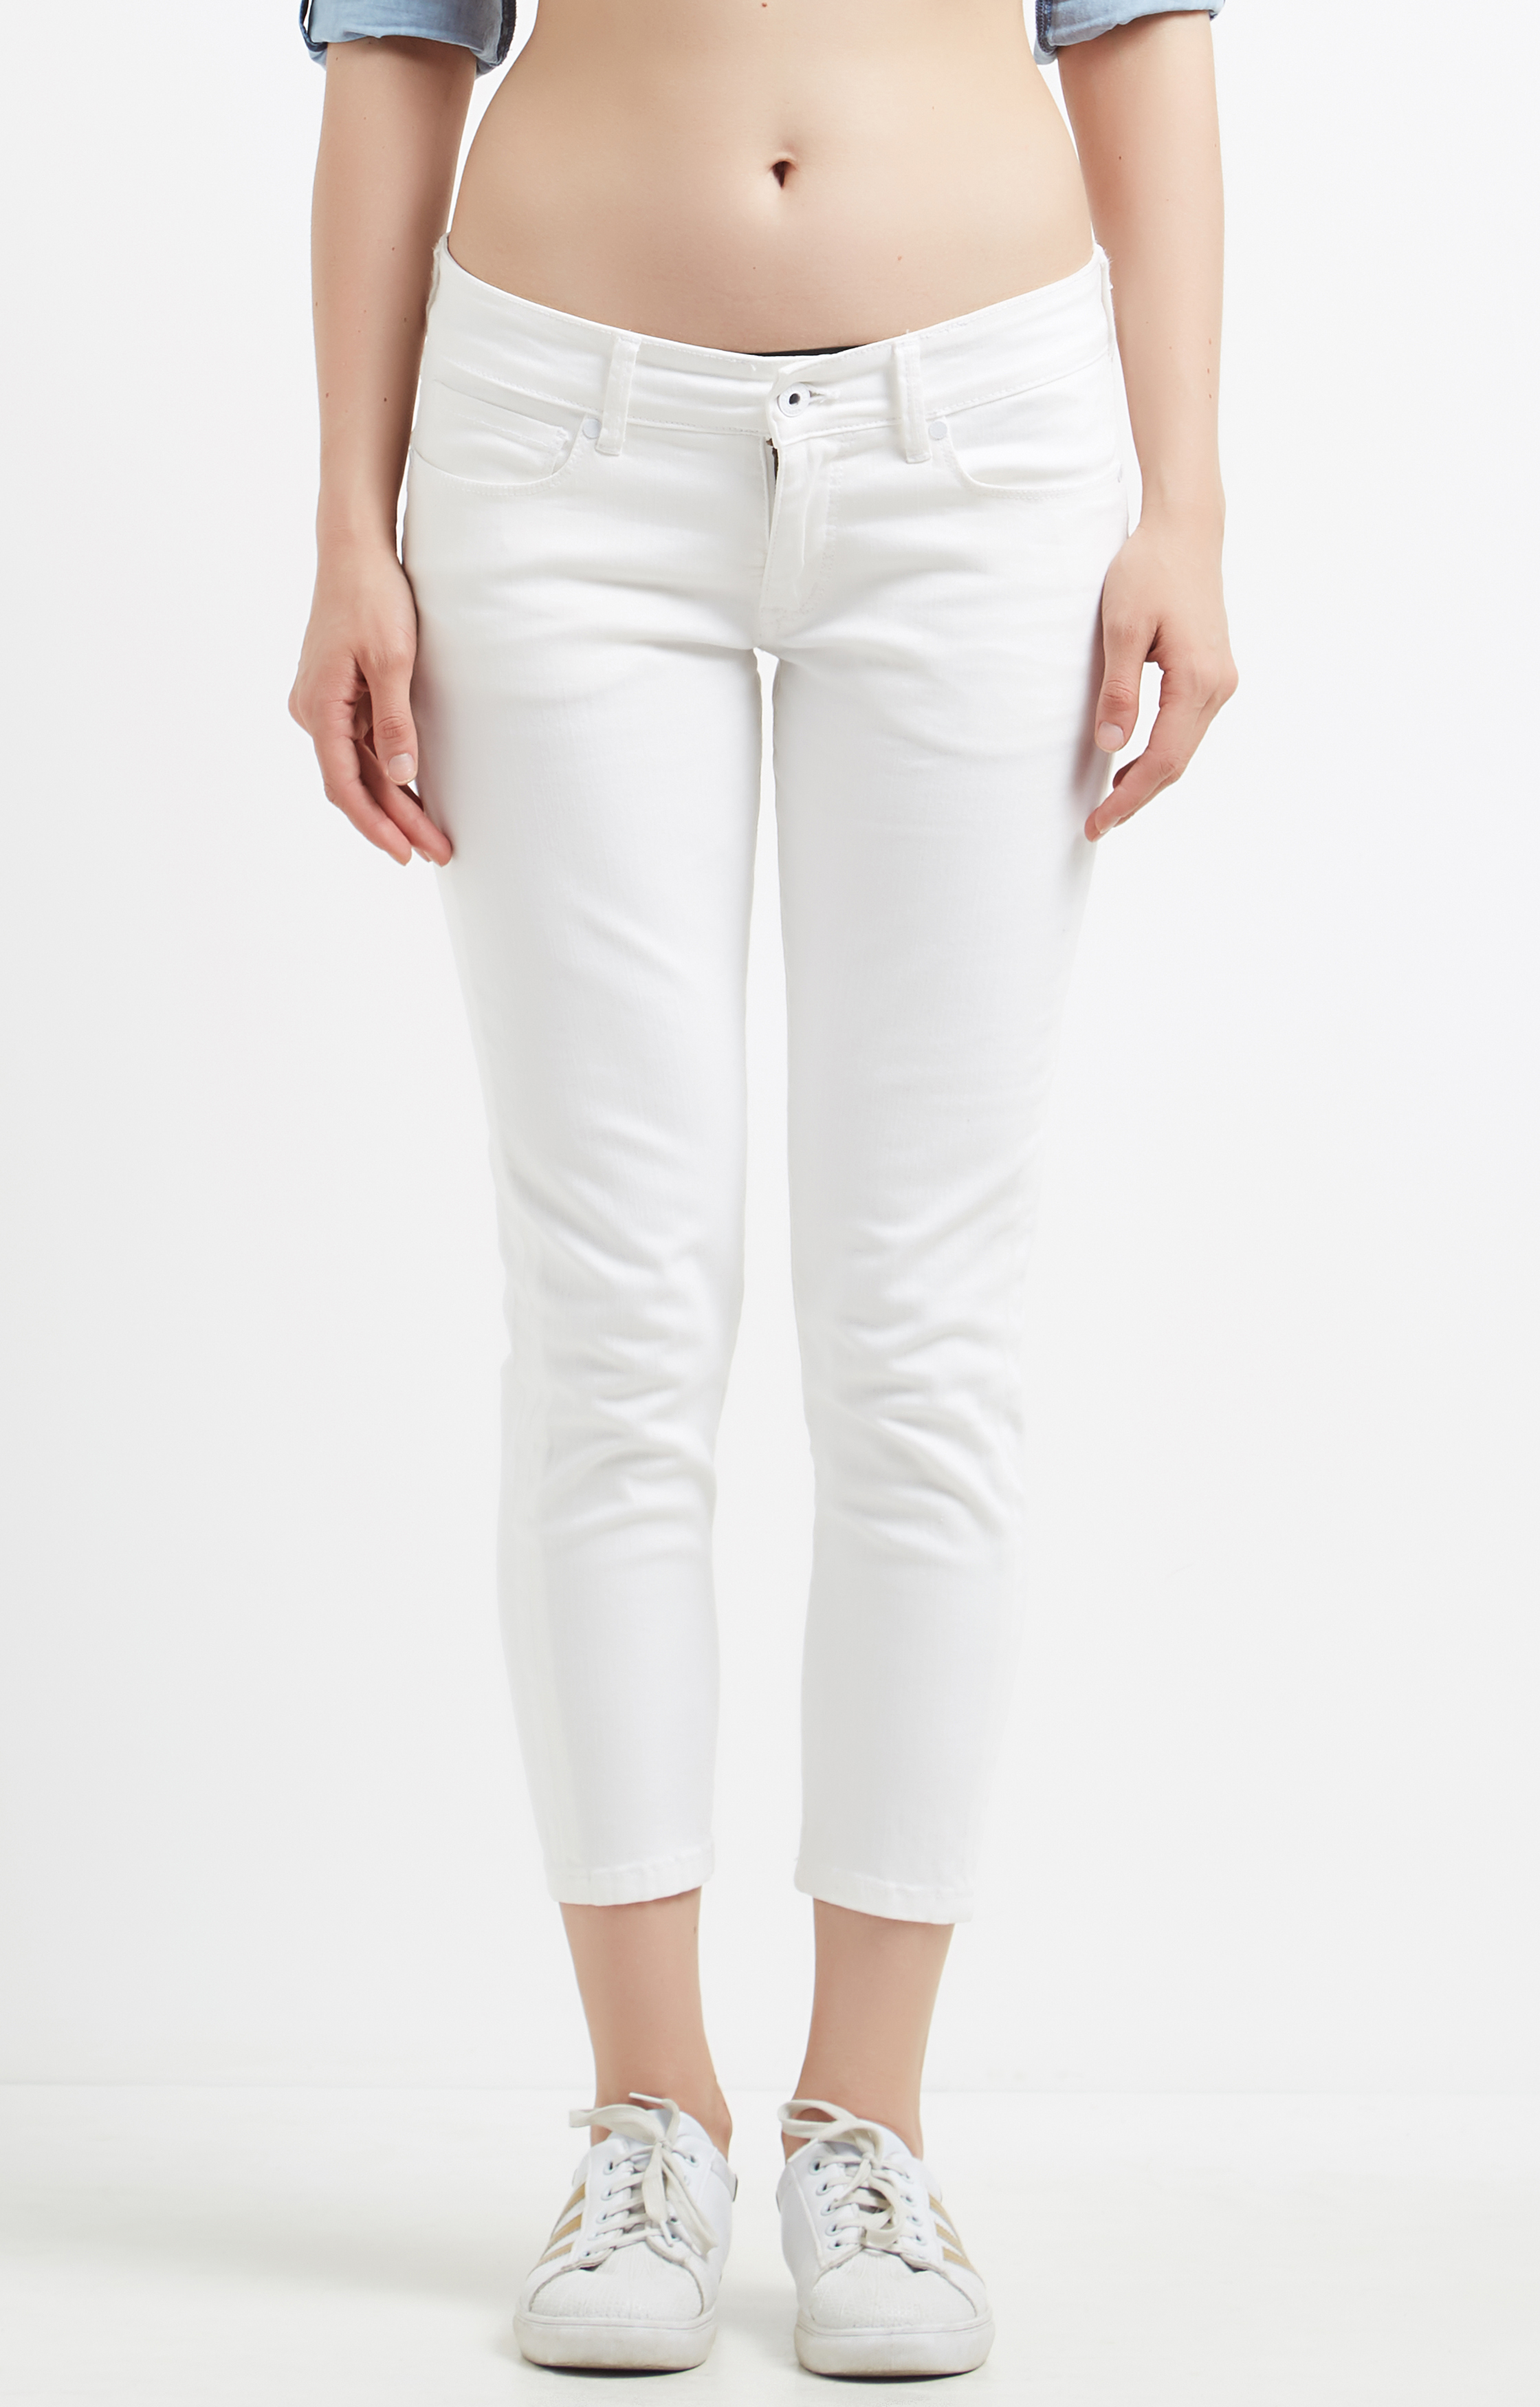 Pepe Jeans   White Cropped Jeans